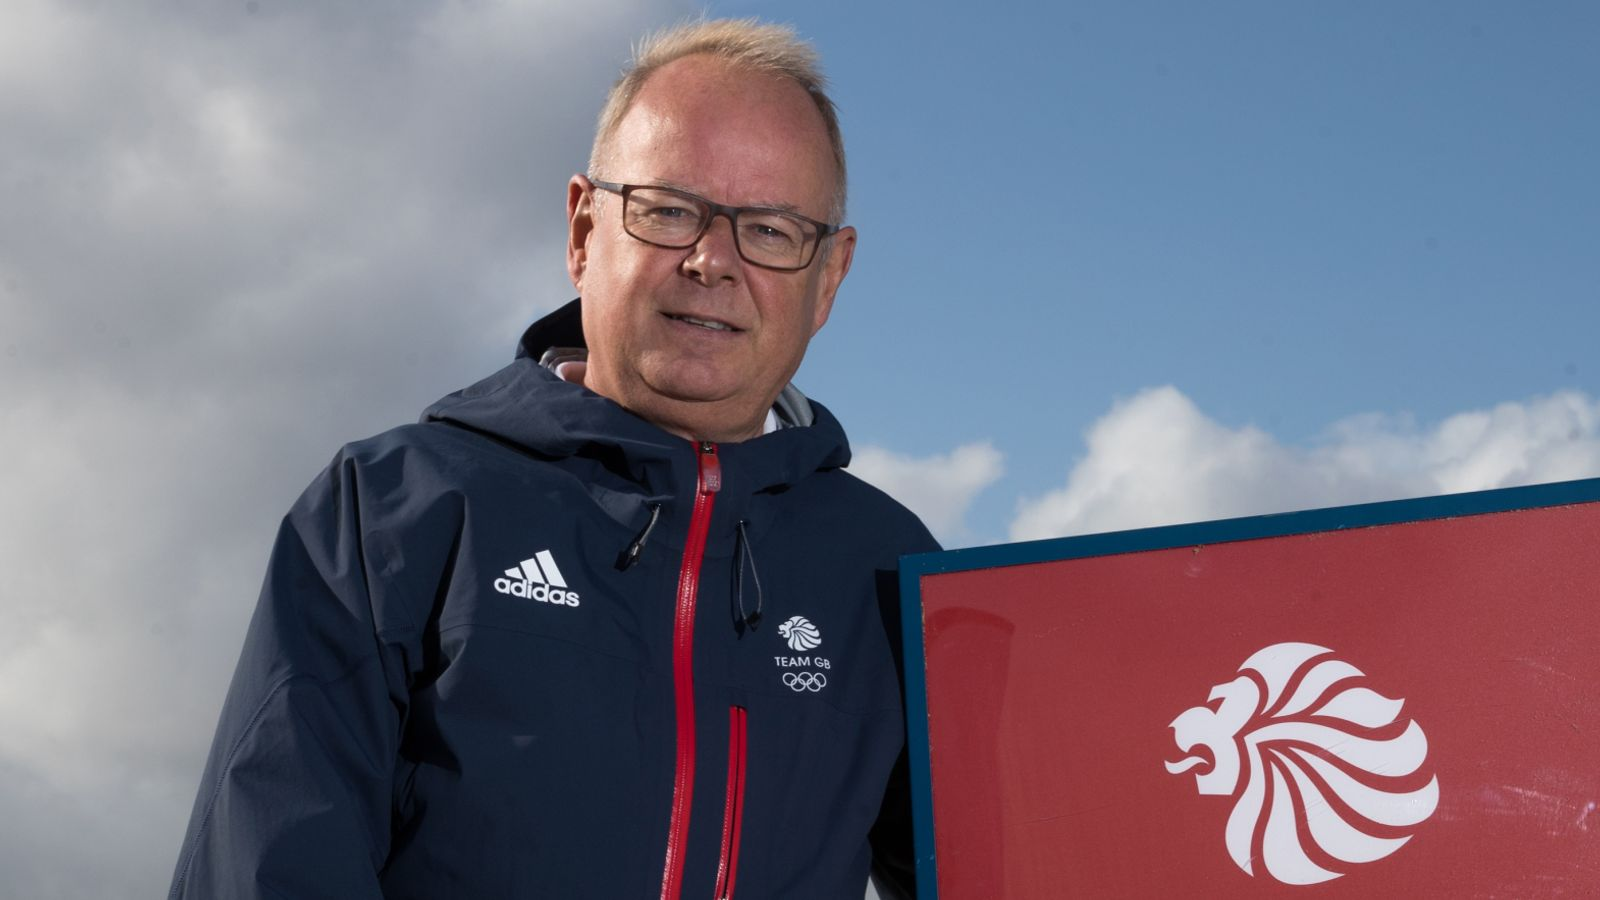 Tokyo Olympics: Team GB 'on the cusp of history' with more women than men set to qualify, says Mark England